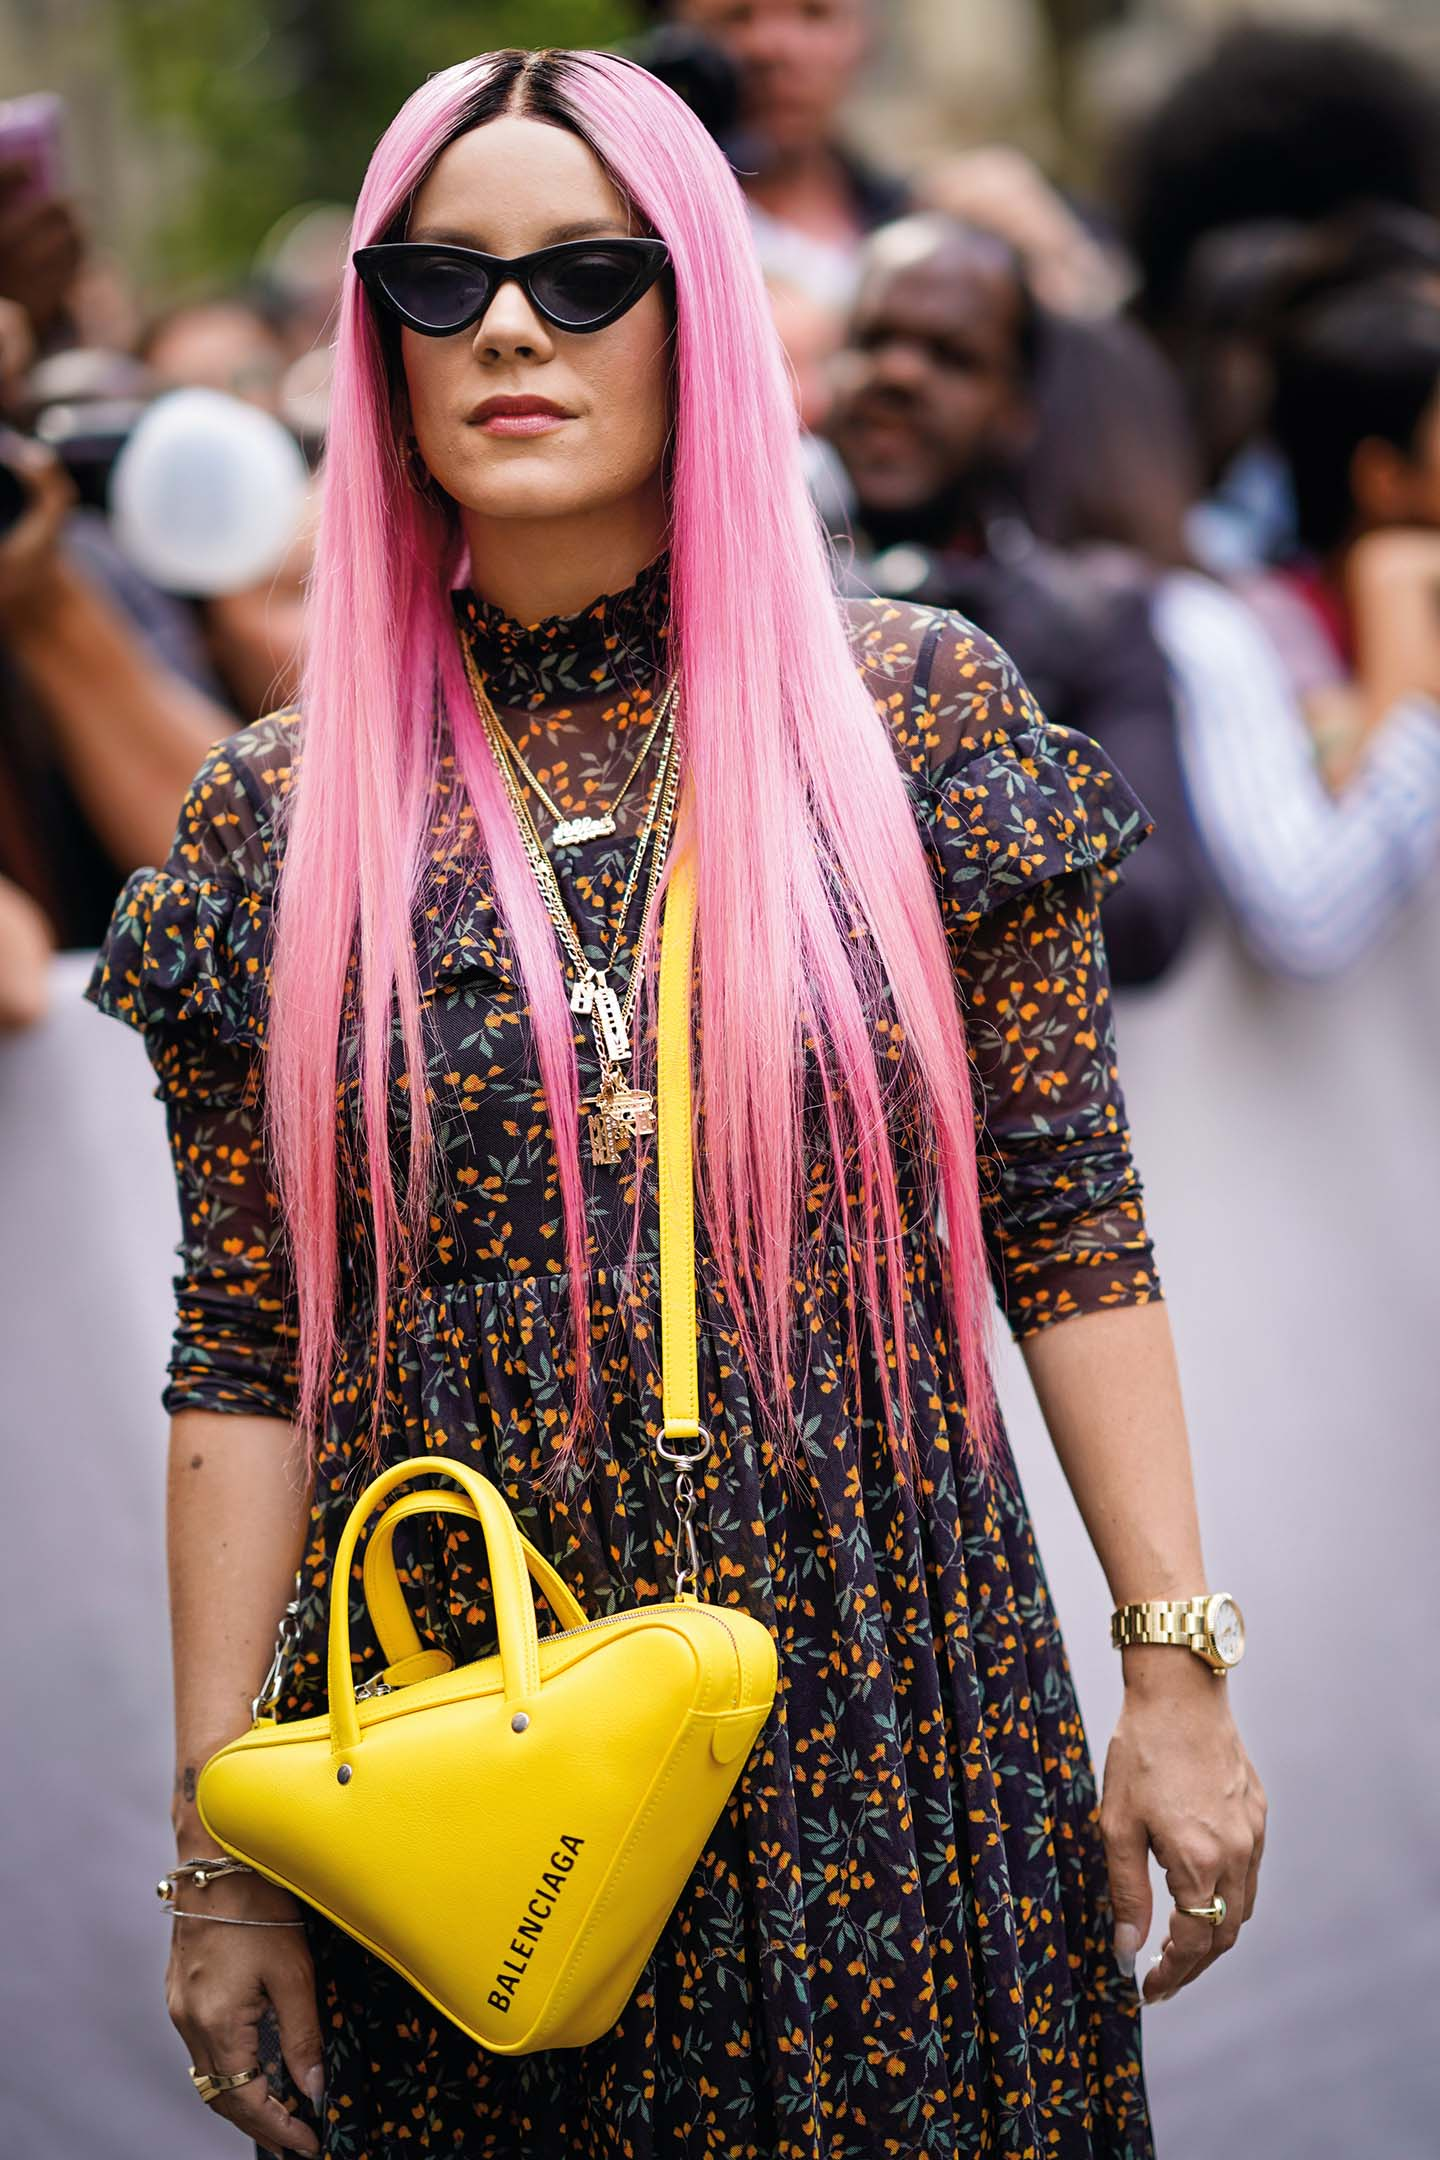 PARIS, FRANCE - JUNE 23:  Lily Allen is seen, outside Dior, during Paris Fashion Week - Menswear Spring-Summer 2019, on June 23, 2018 in Paris, France.  (Photo by Edward Berthelot/GC Images)